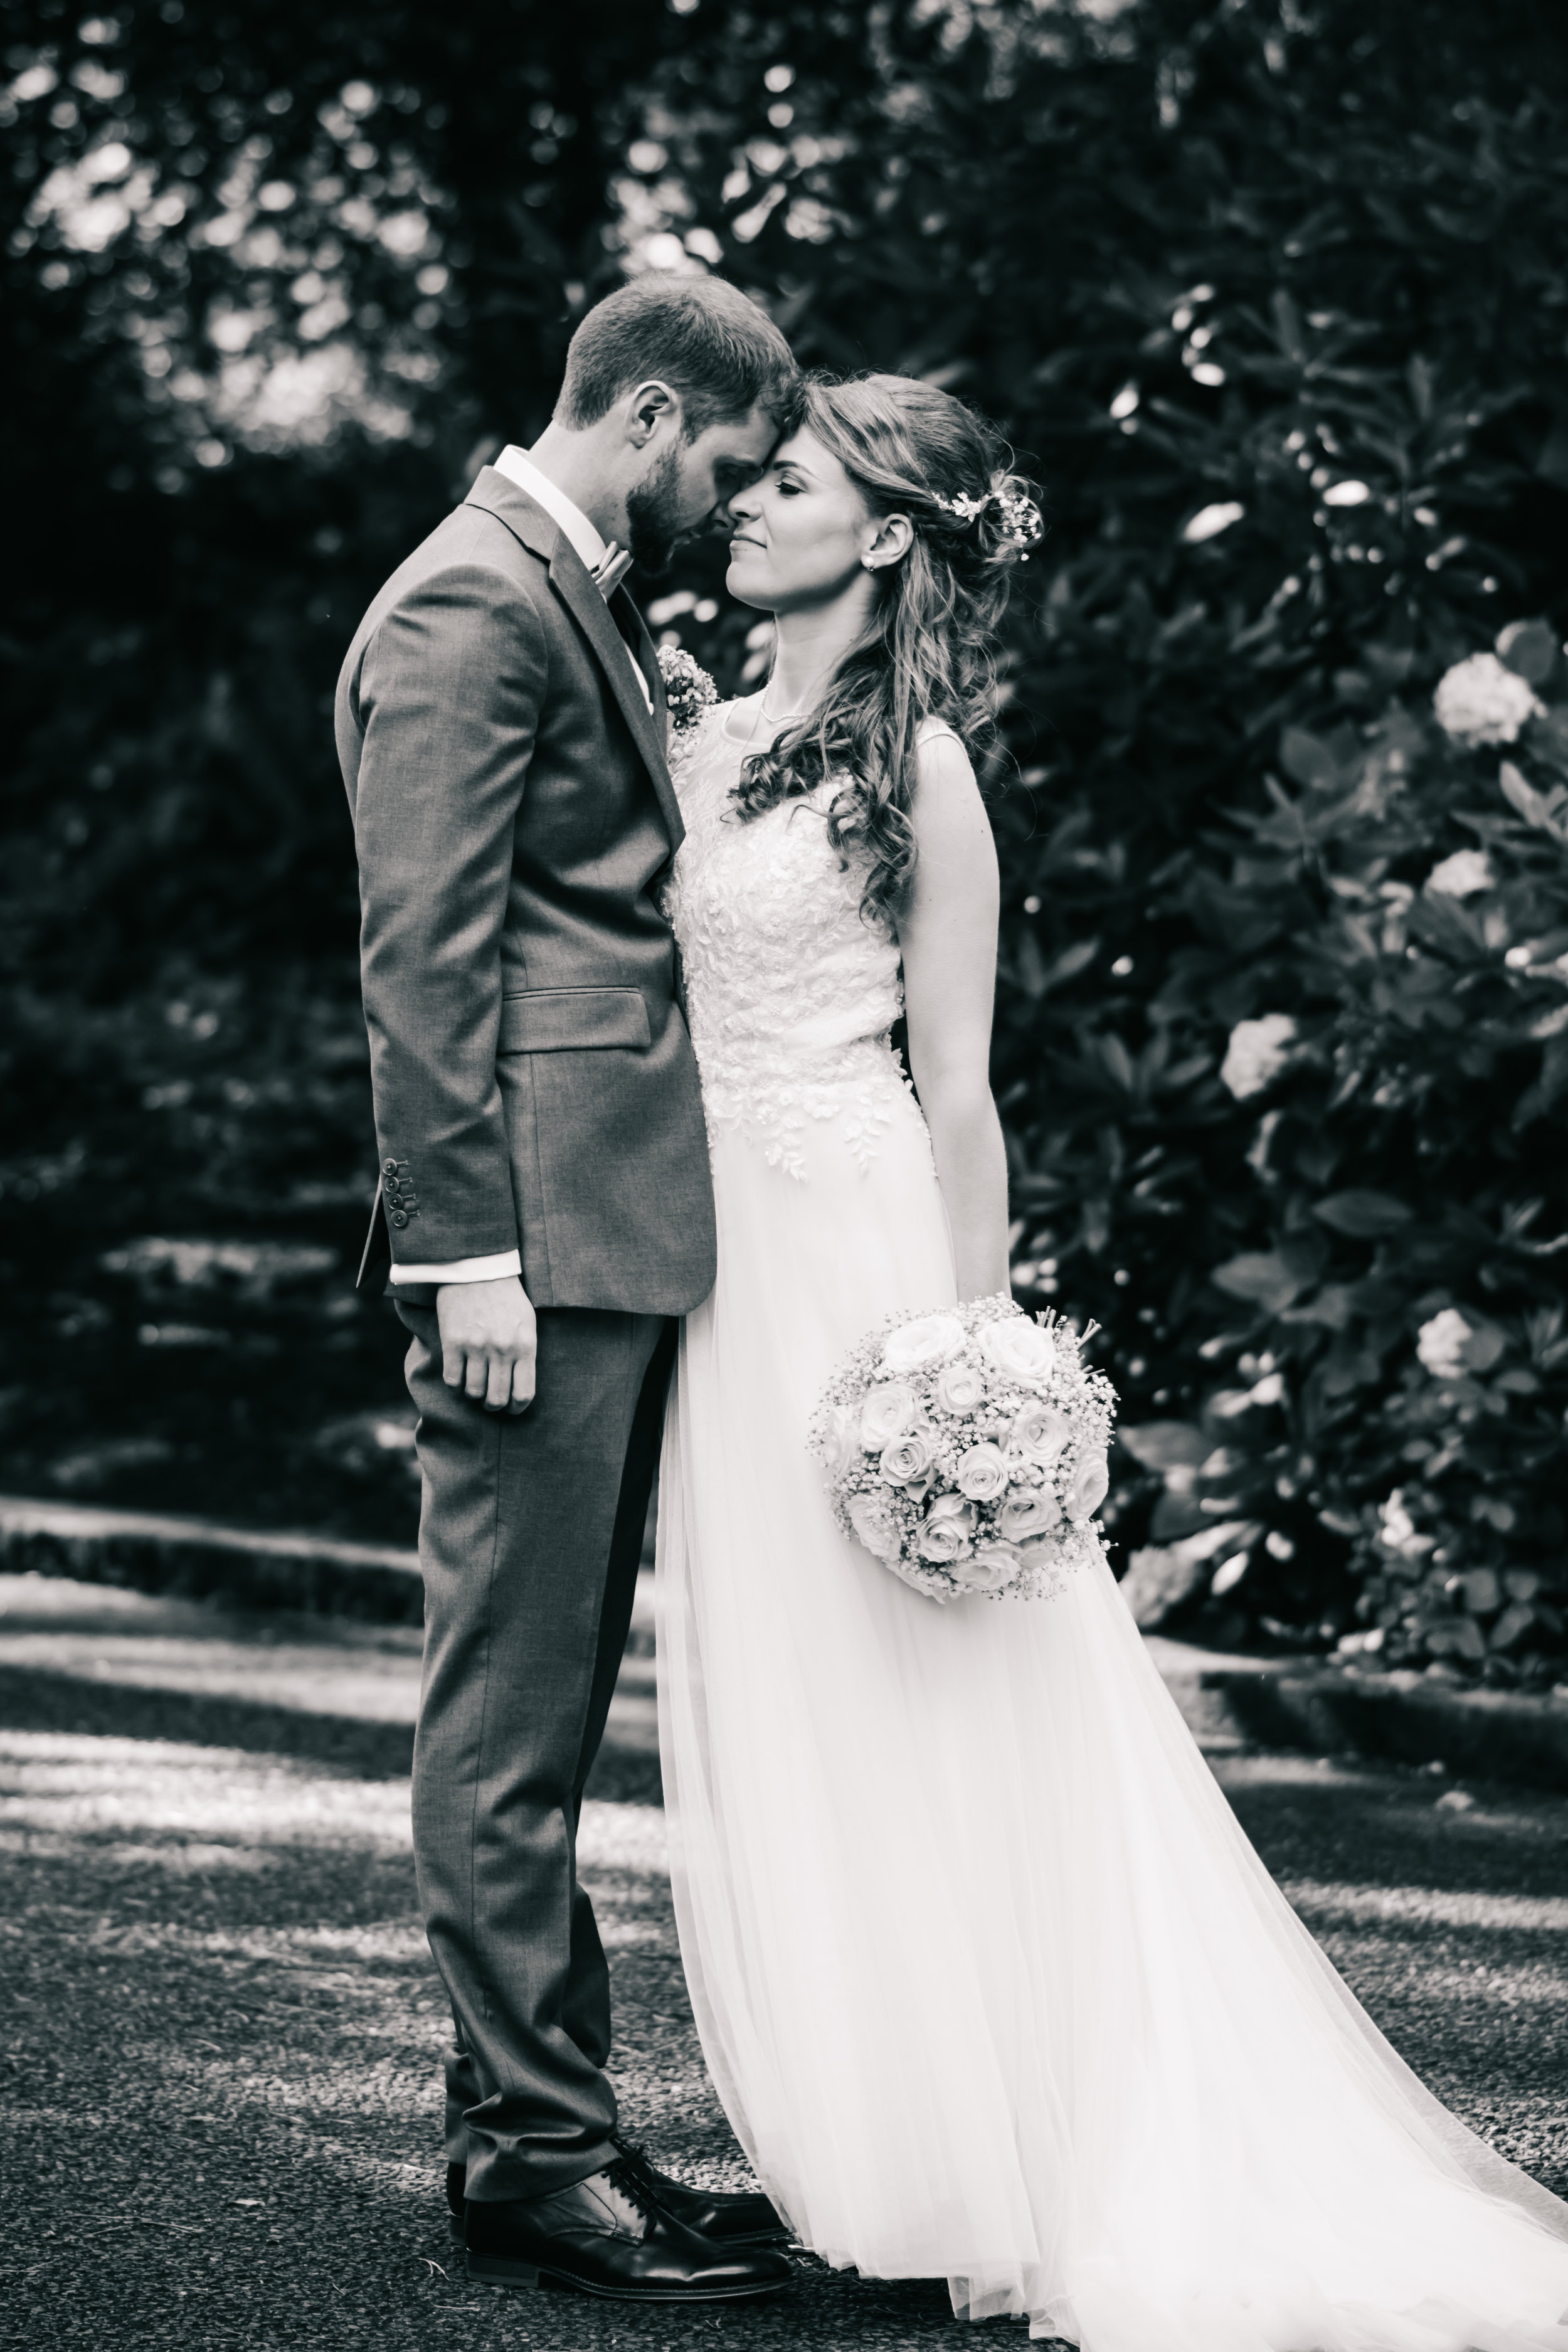 Rossendale Wedding Photographer, Astley Bank Lancashire11